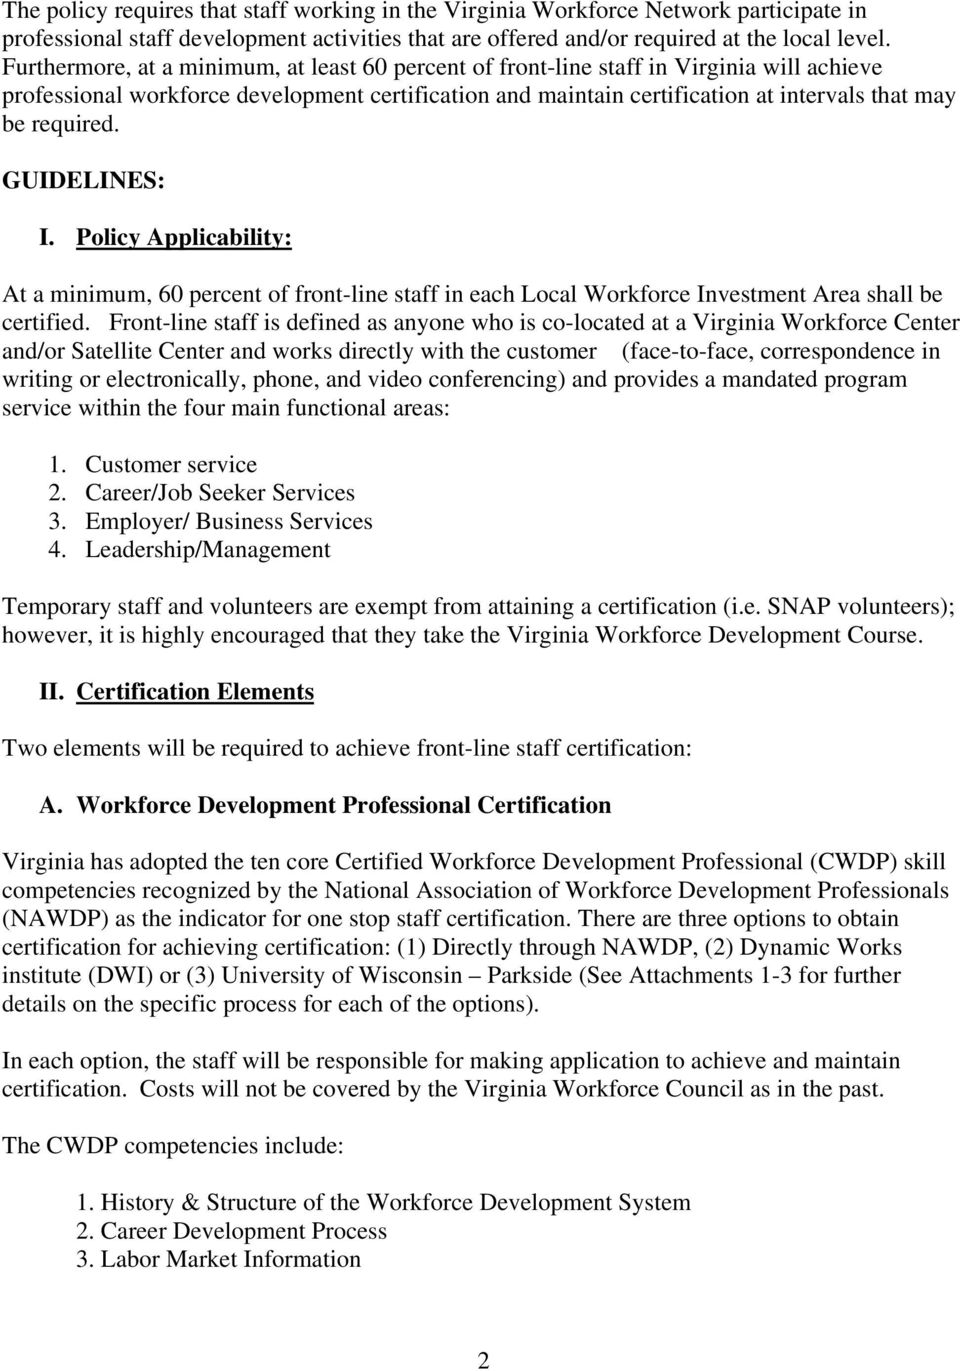 required. GUIDELINES: I. Policy Applicability: At a minimum, 60 percent of front-line staff in each Local Workforce Investment Area shall be certified.